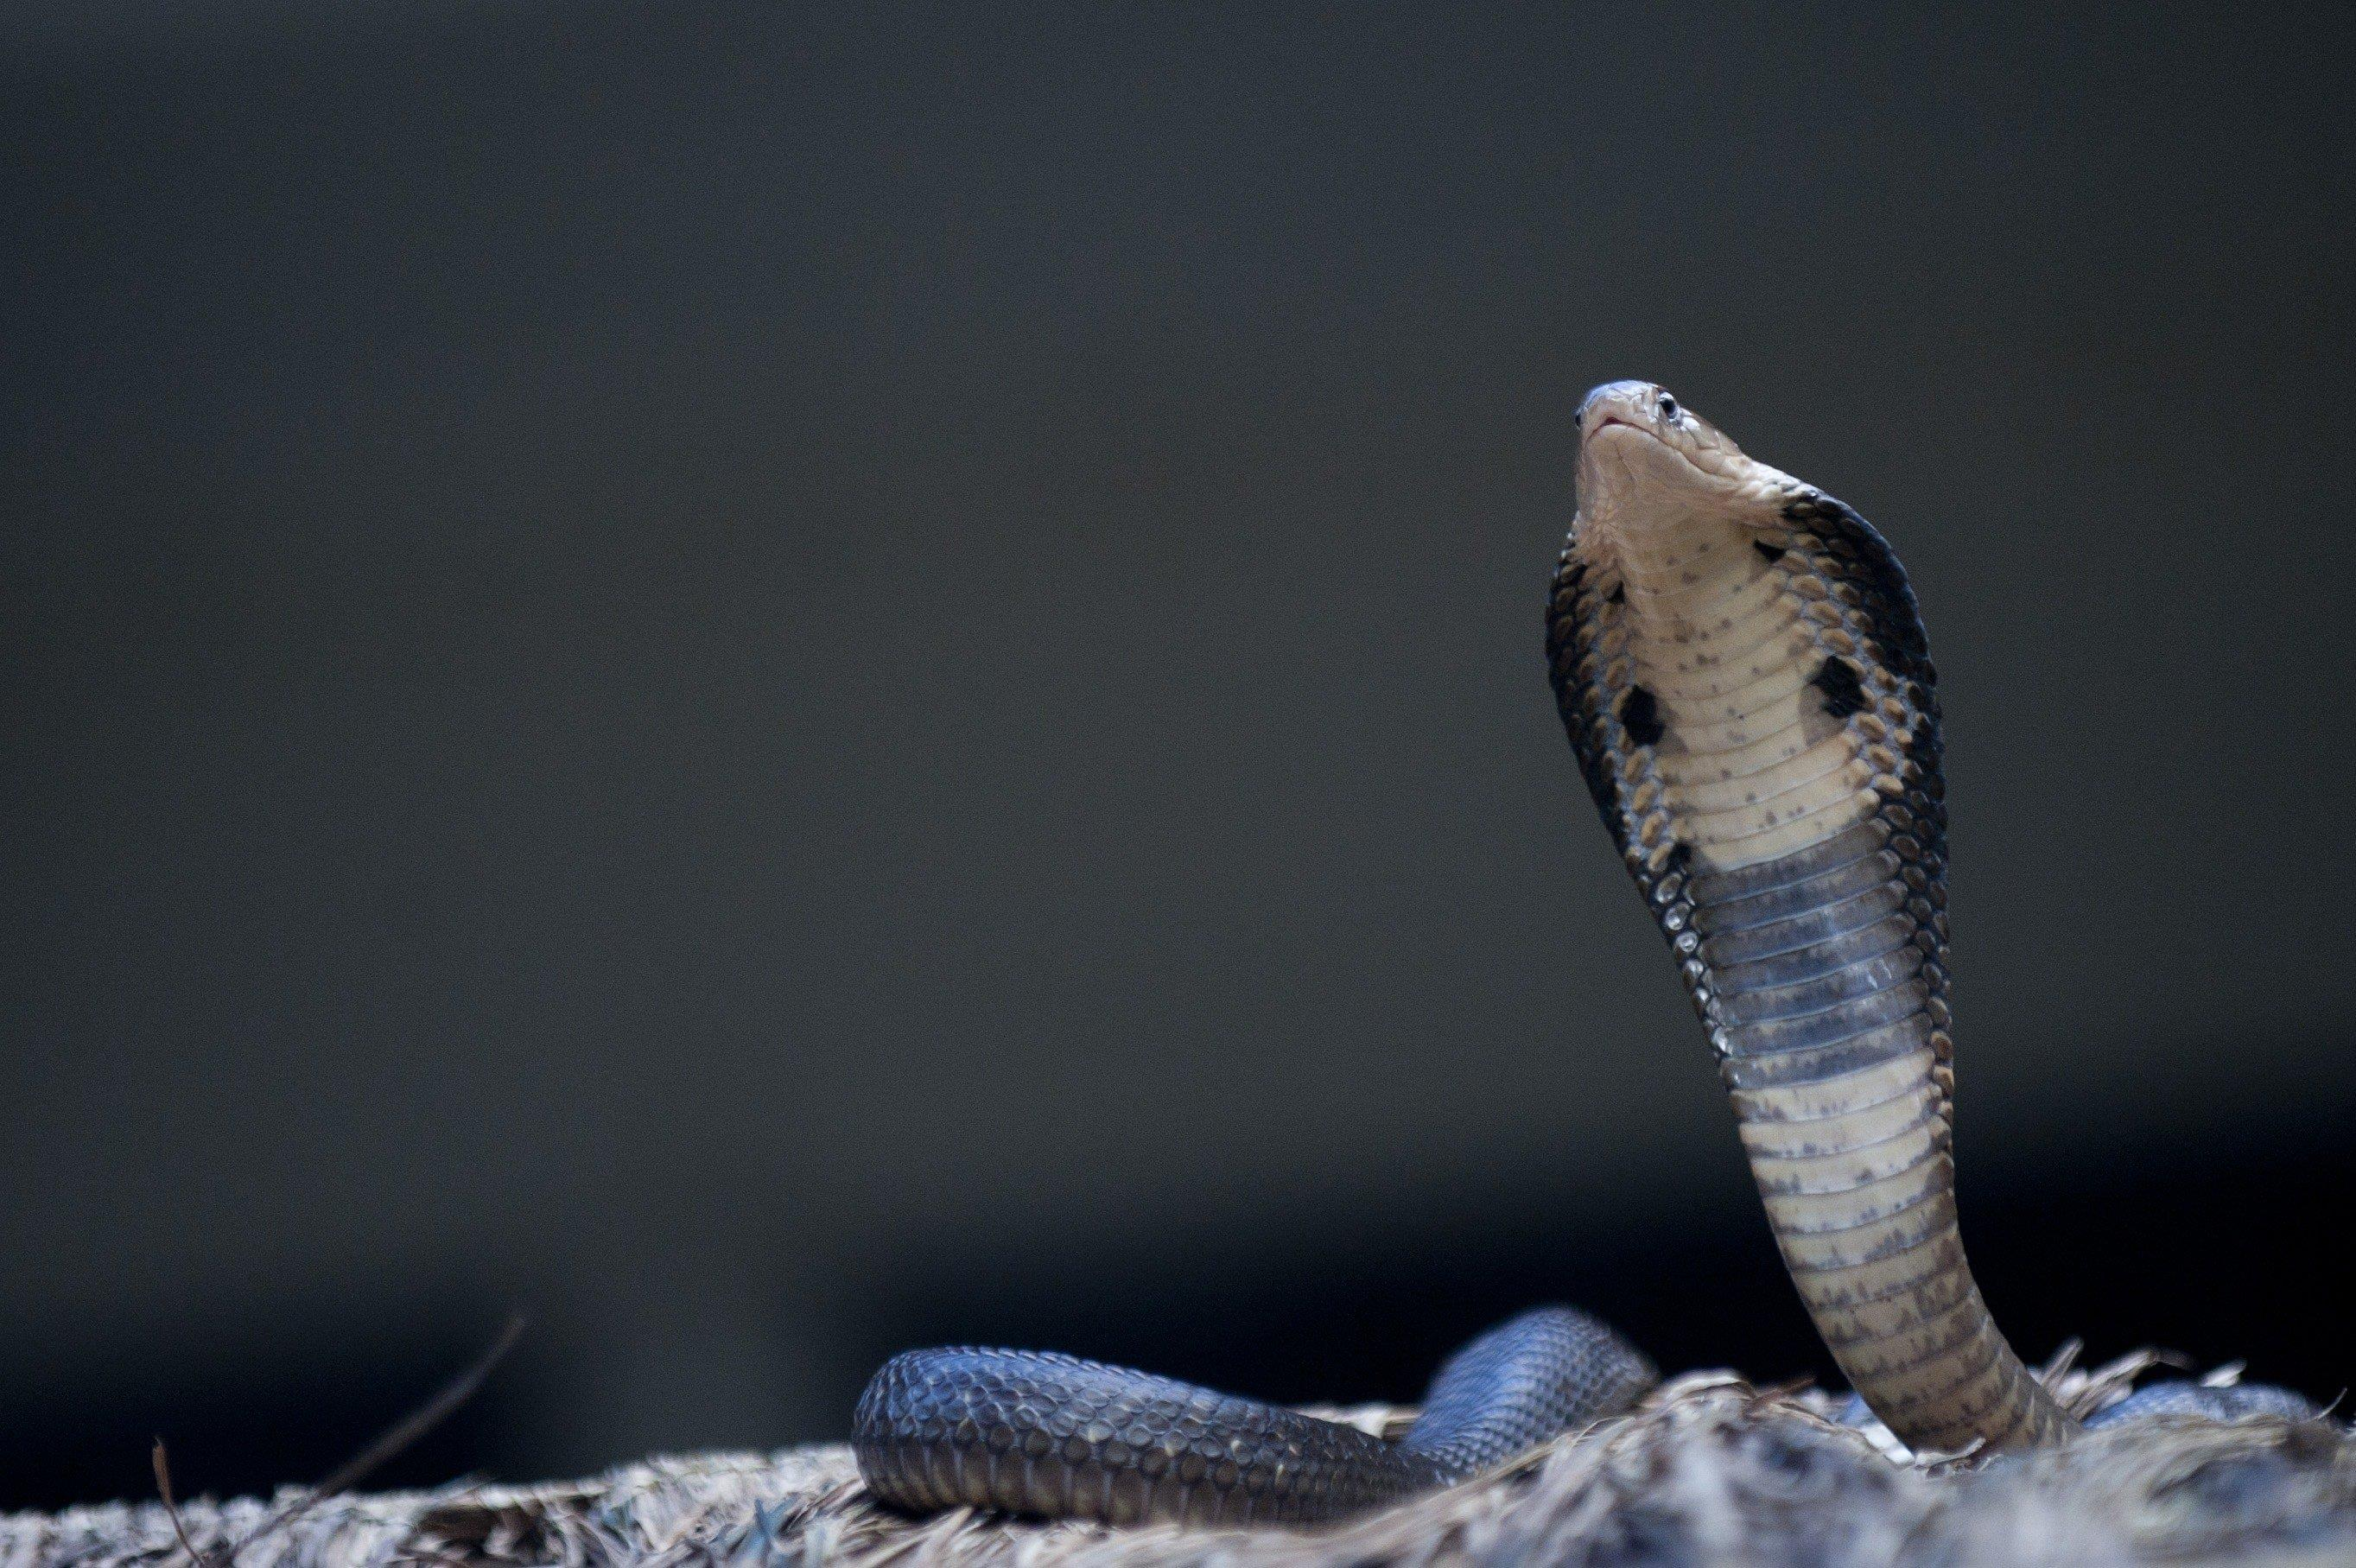 Five head snake photos 142 best Antique Milk Containers images by Kathy Drury on